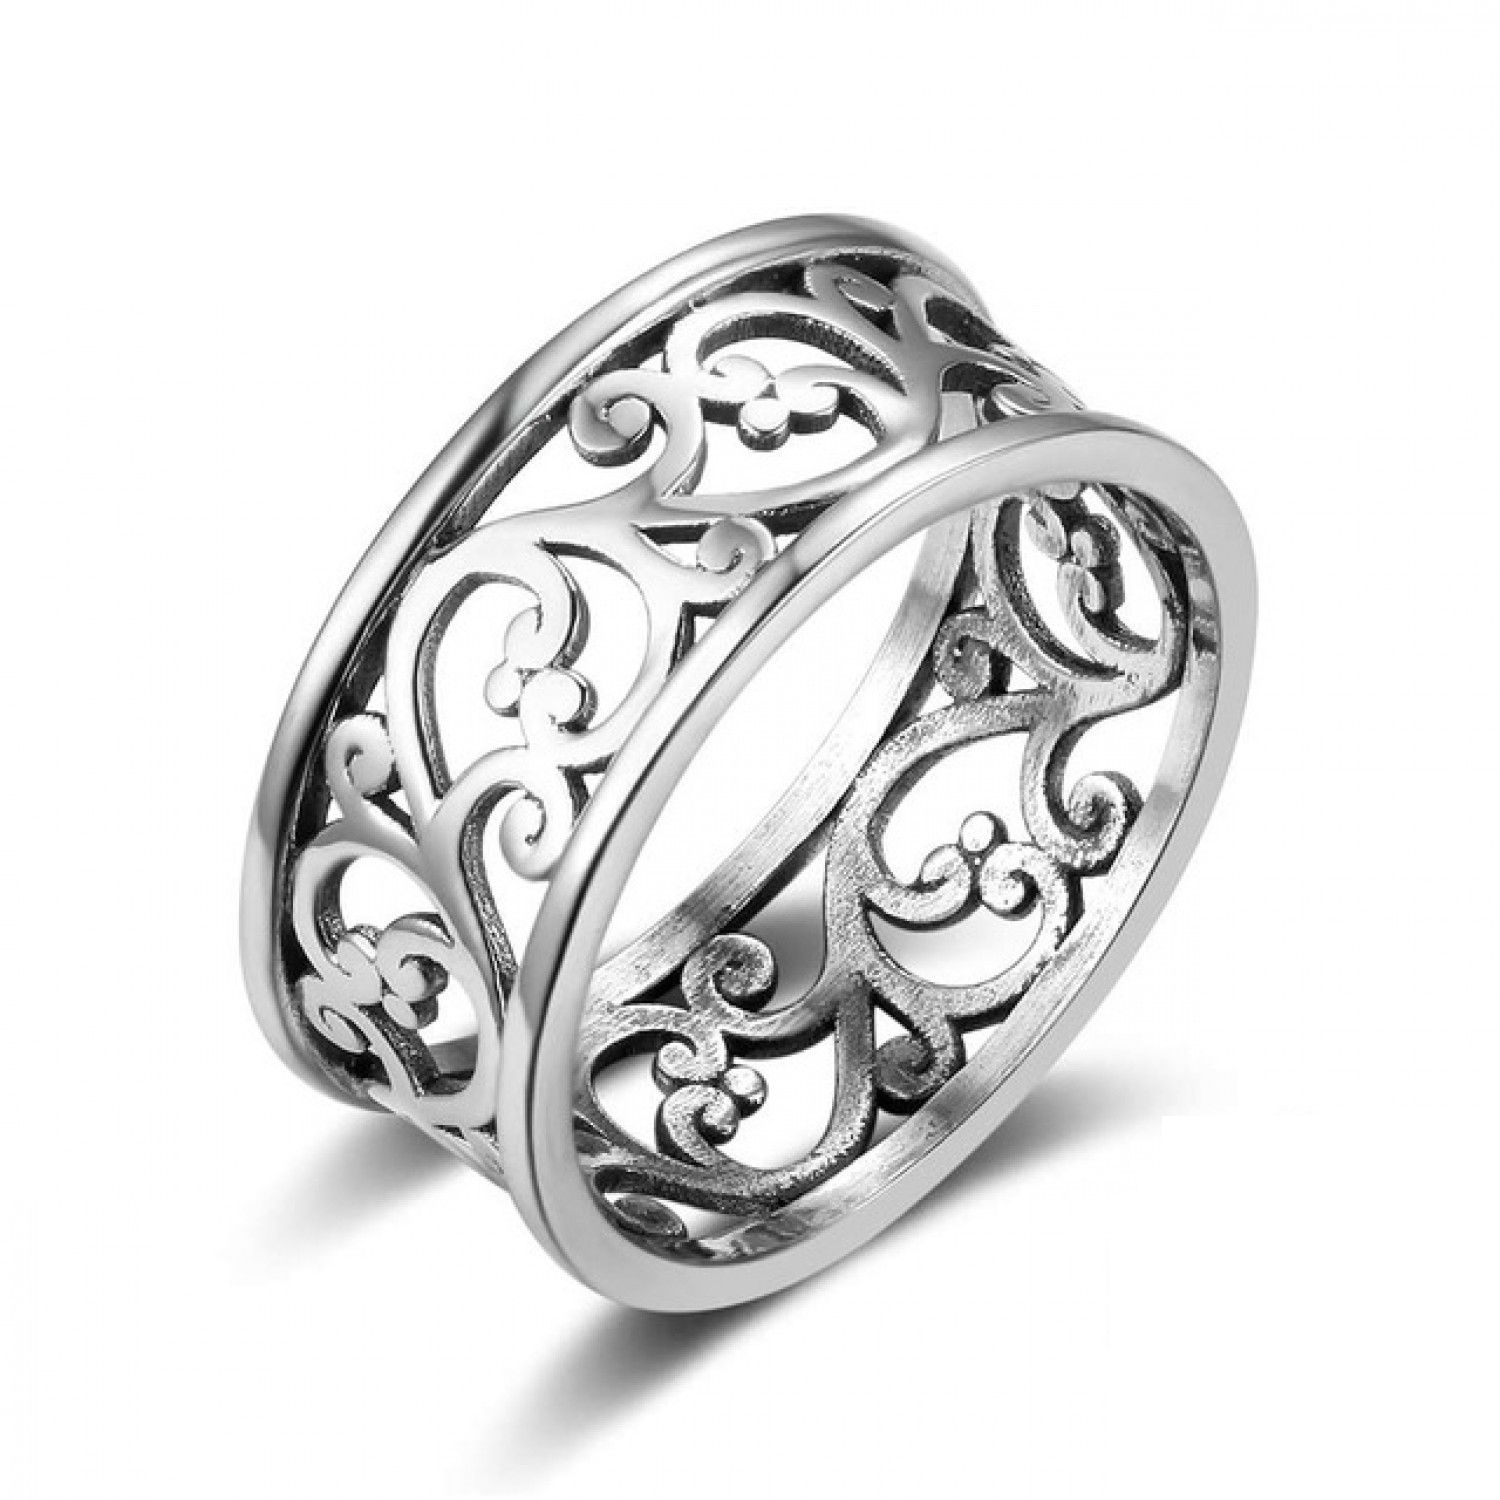 a64f4218698 Hot 925 Sterling Silver Rings for Women Vine Pattern Retro Vintage ...